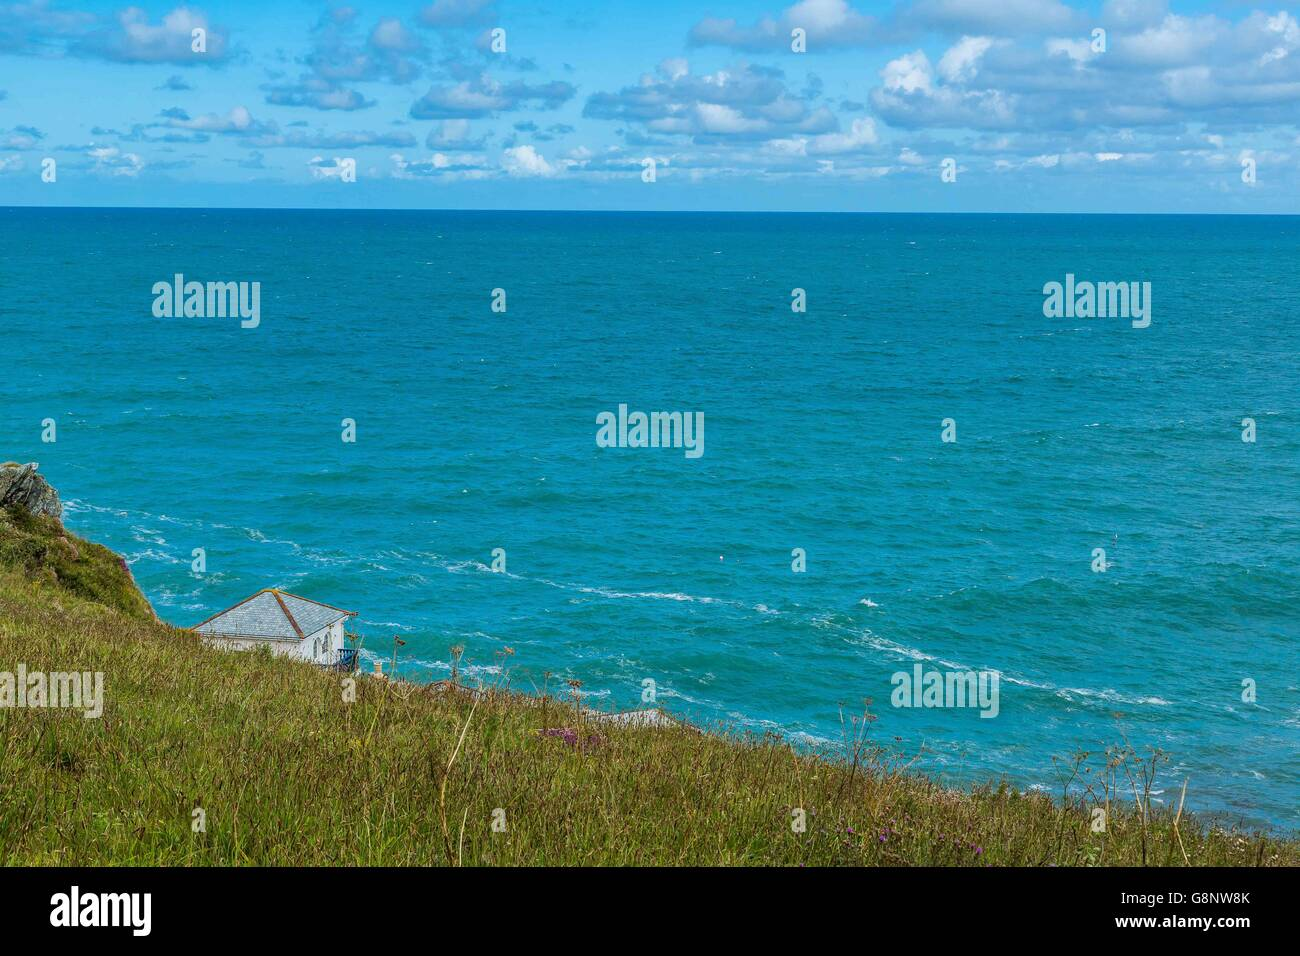 The Lewinnick Lodge at West Pentire waves and the blue sea ocean off the Cornish coast UK - Stock Image